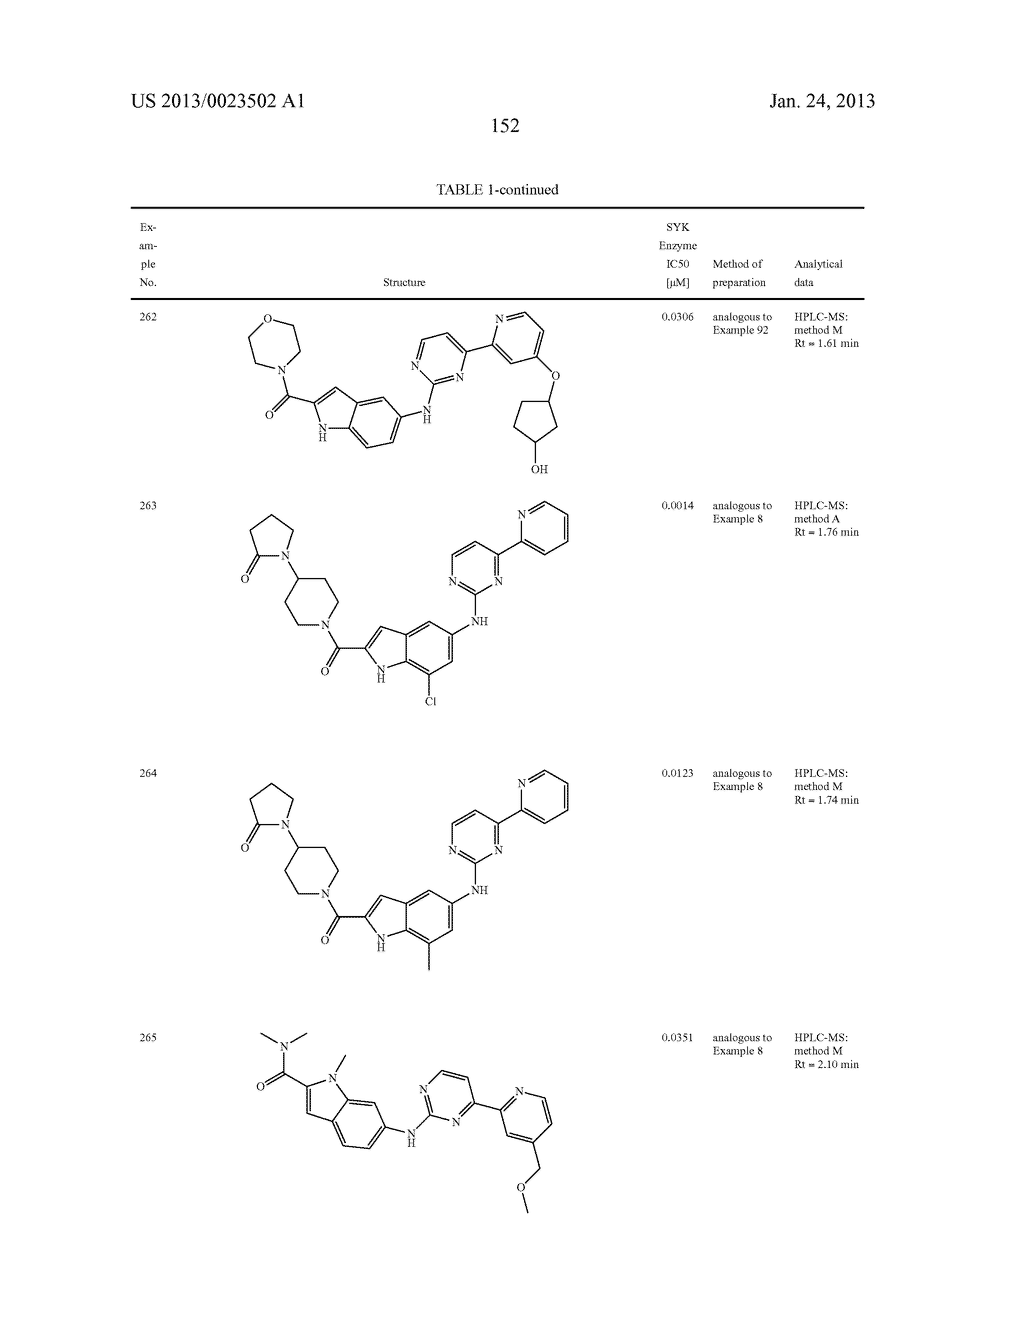 SUBSTITUTED PYRIDINYL-PYRIMIDINES AND THEIR USE AS MEDICAMENTS - diagram, schematic, and image 153